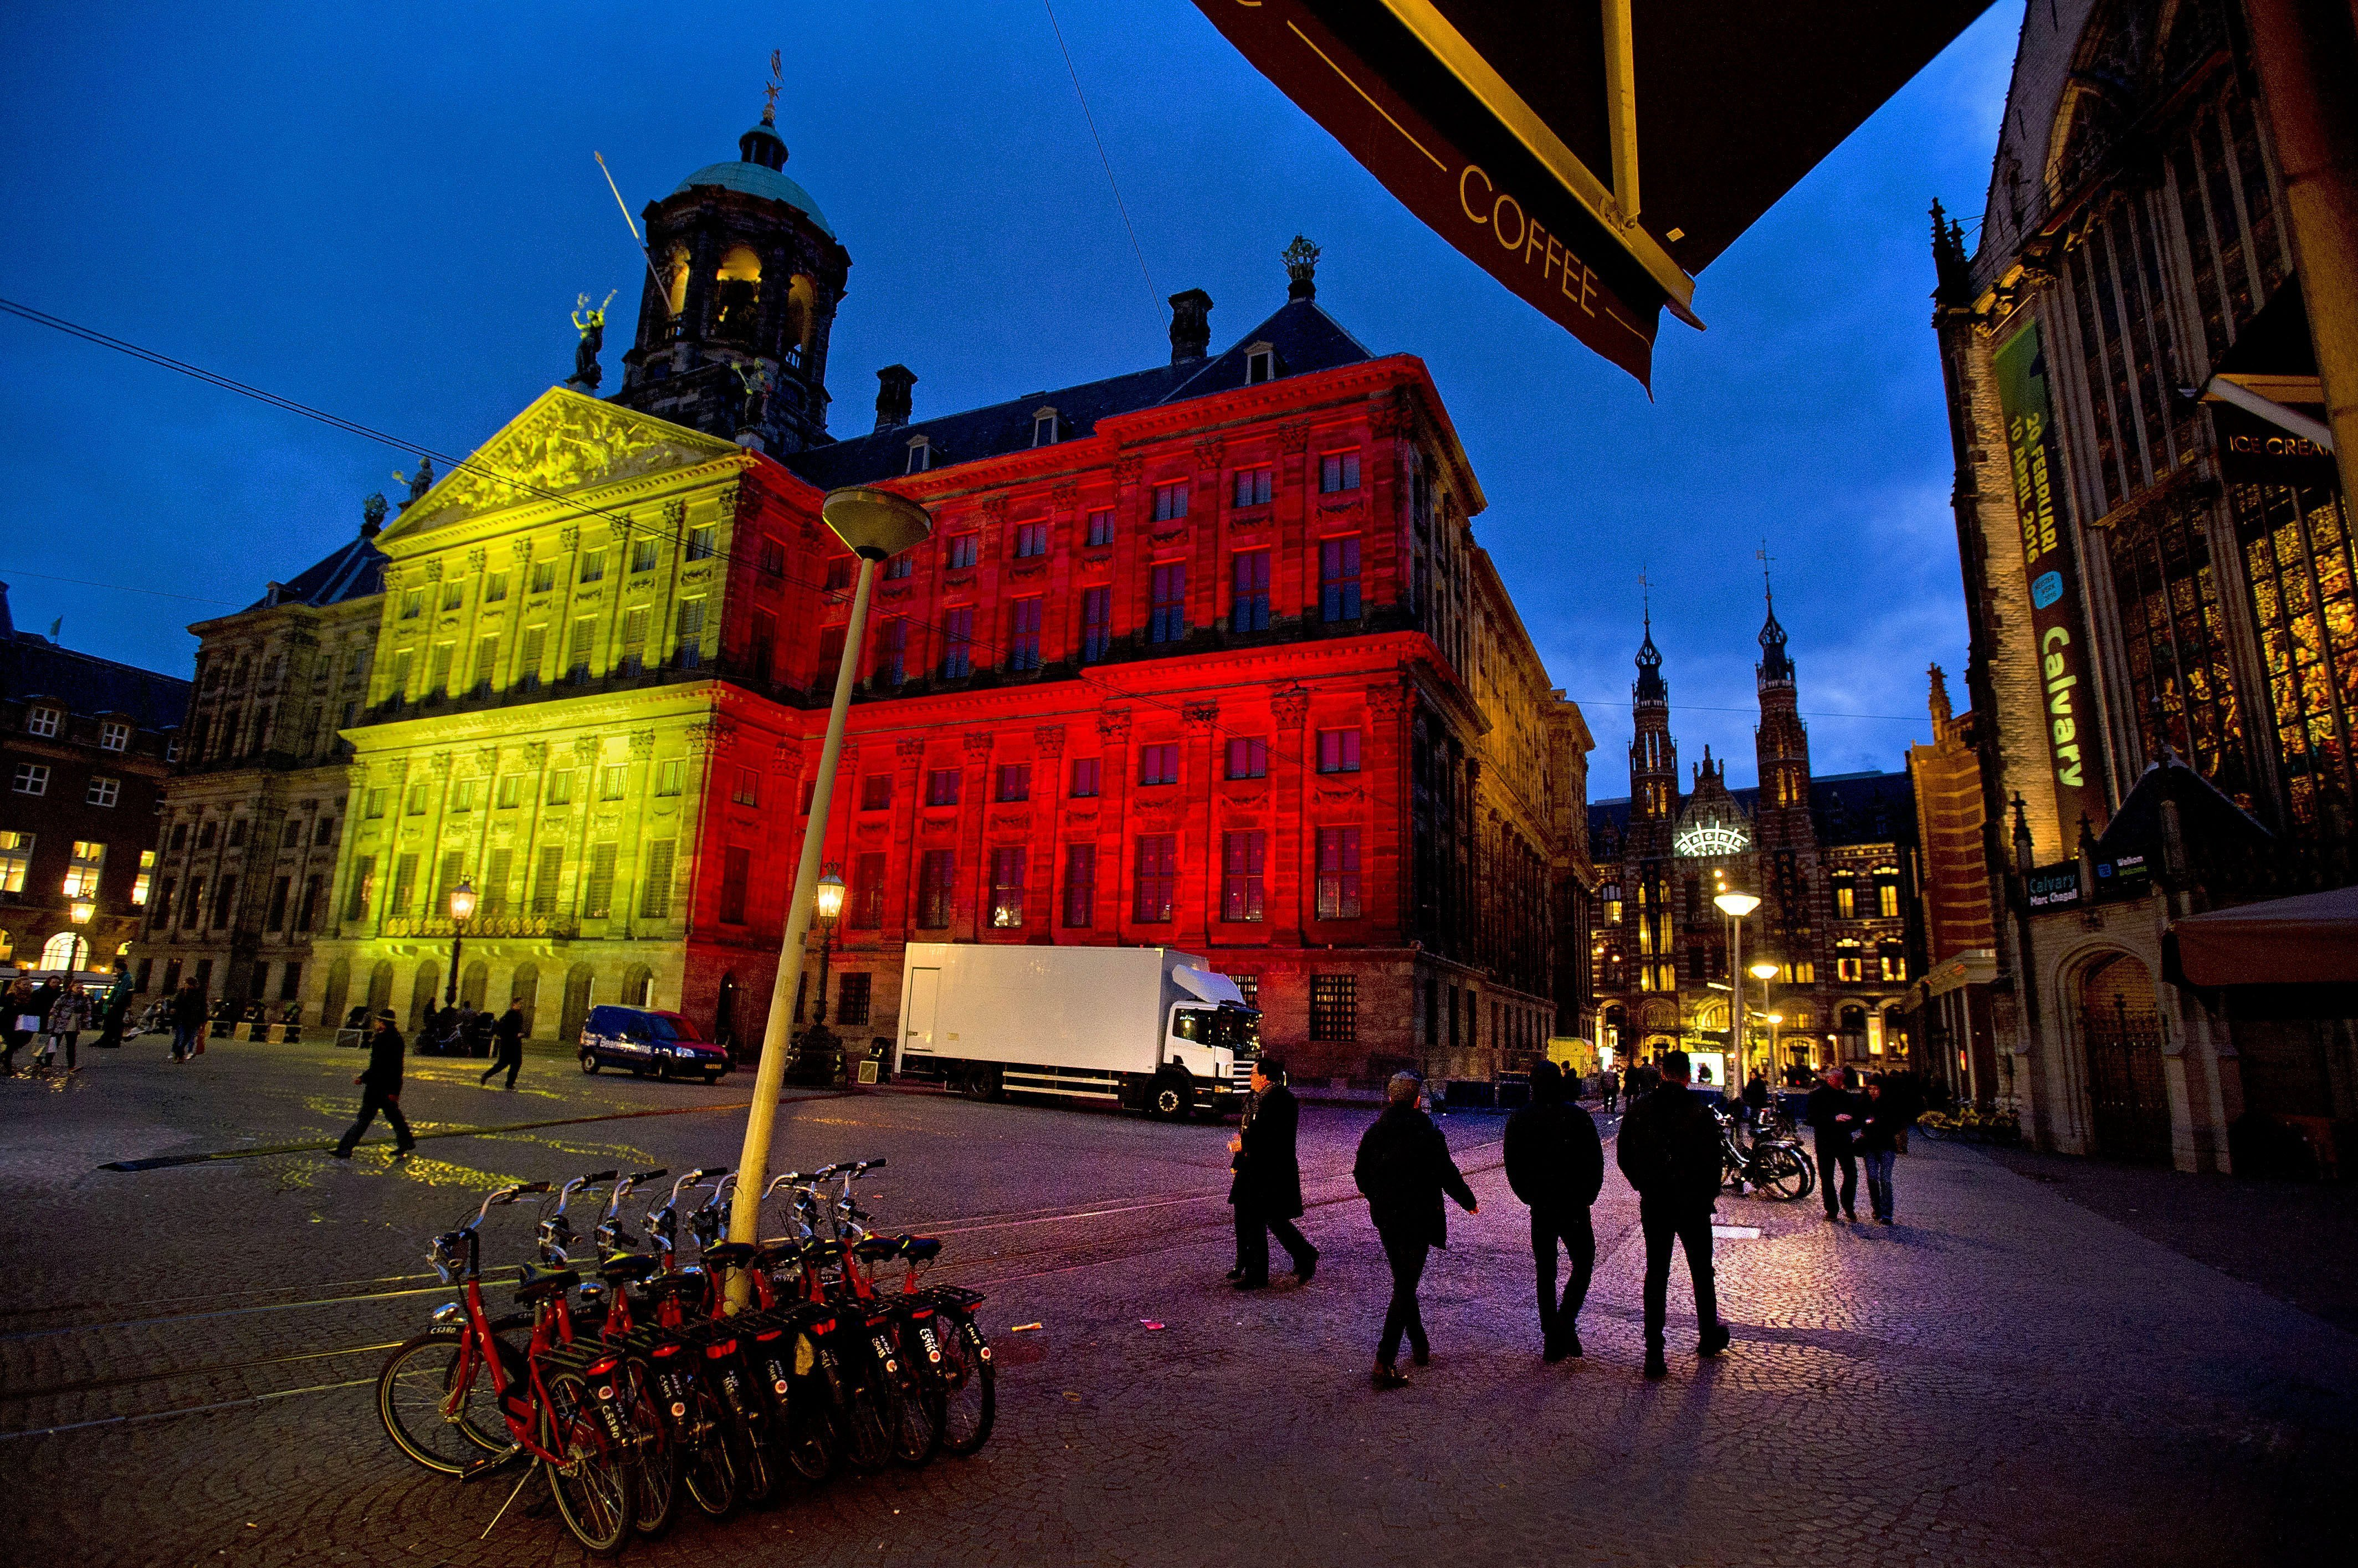 The Royal Palace at Dam Square in Amsterdam